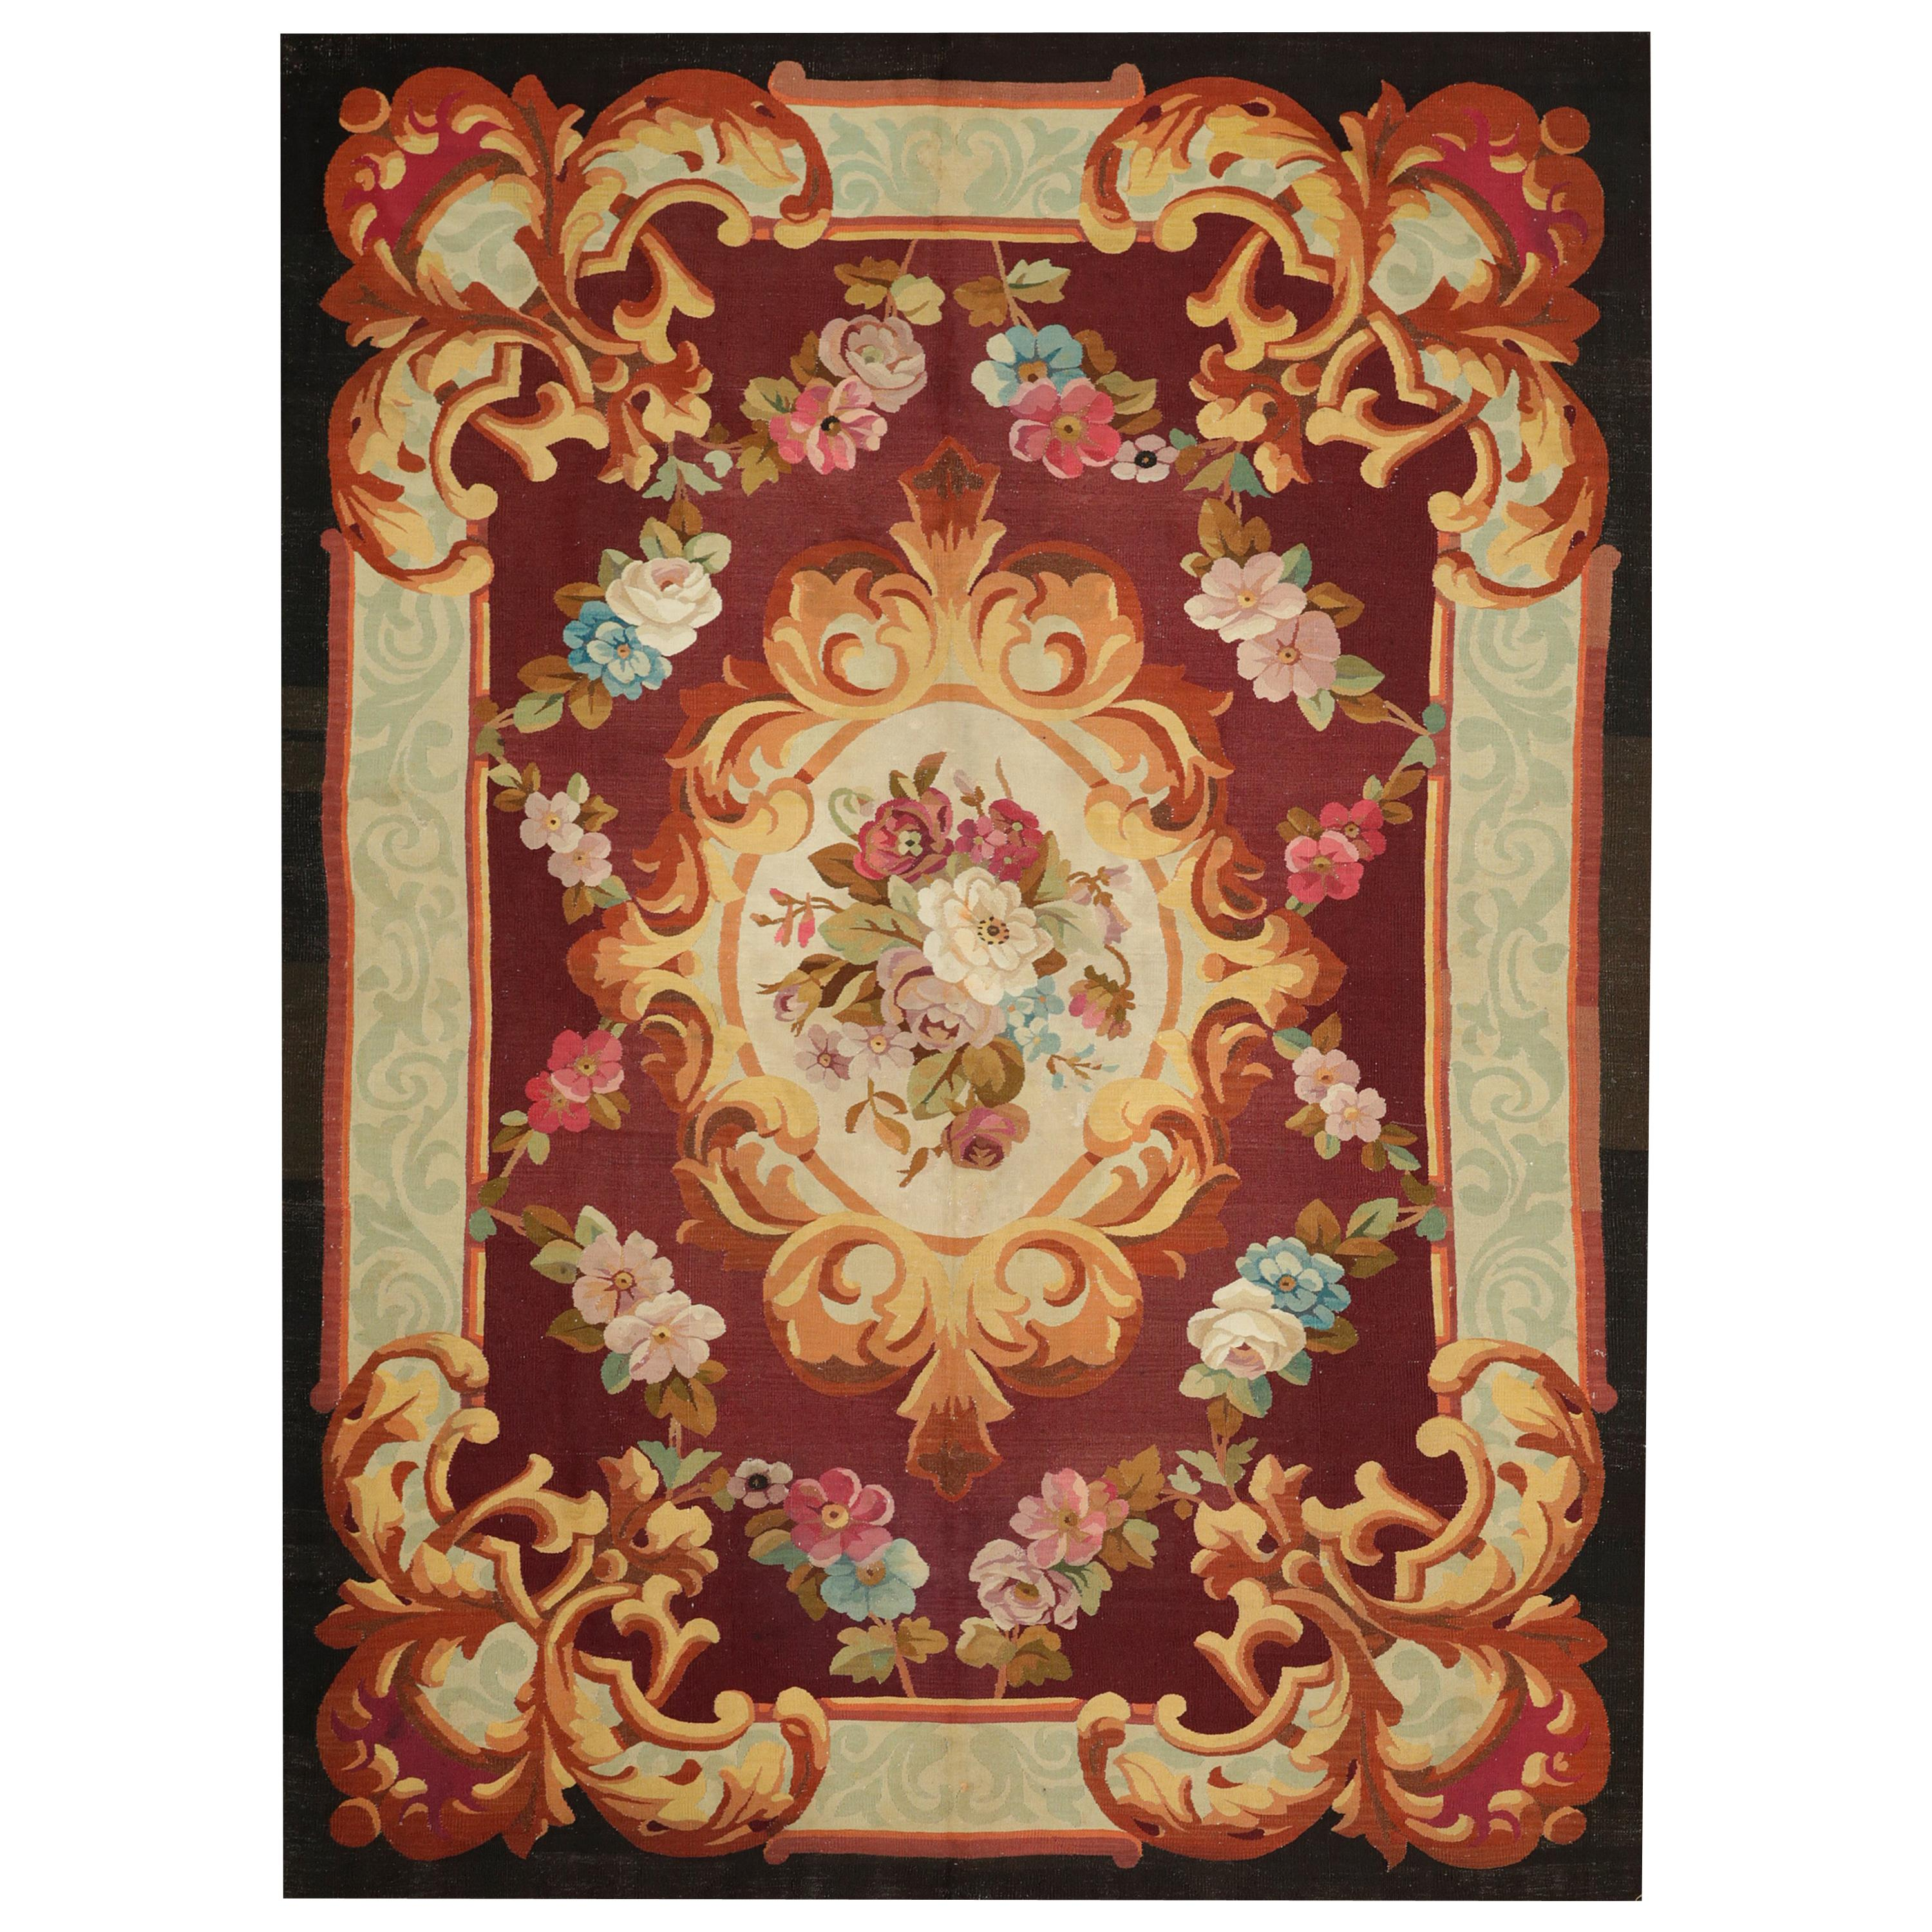 Mid-19th Century Handwoven Antique Aubusson Rug, red with flowers